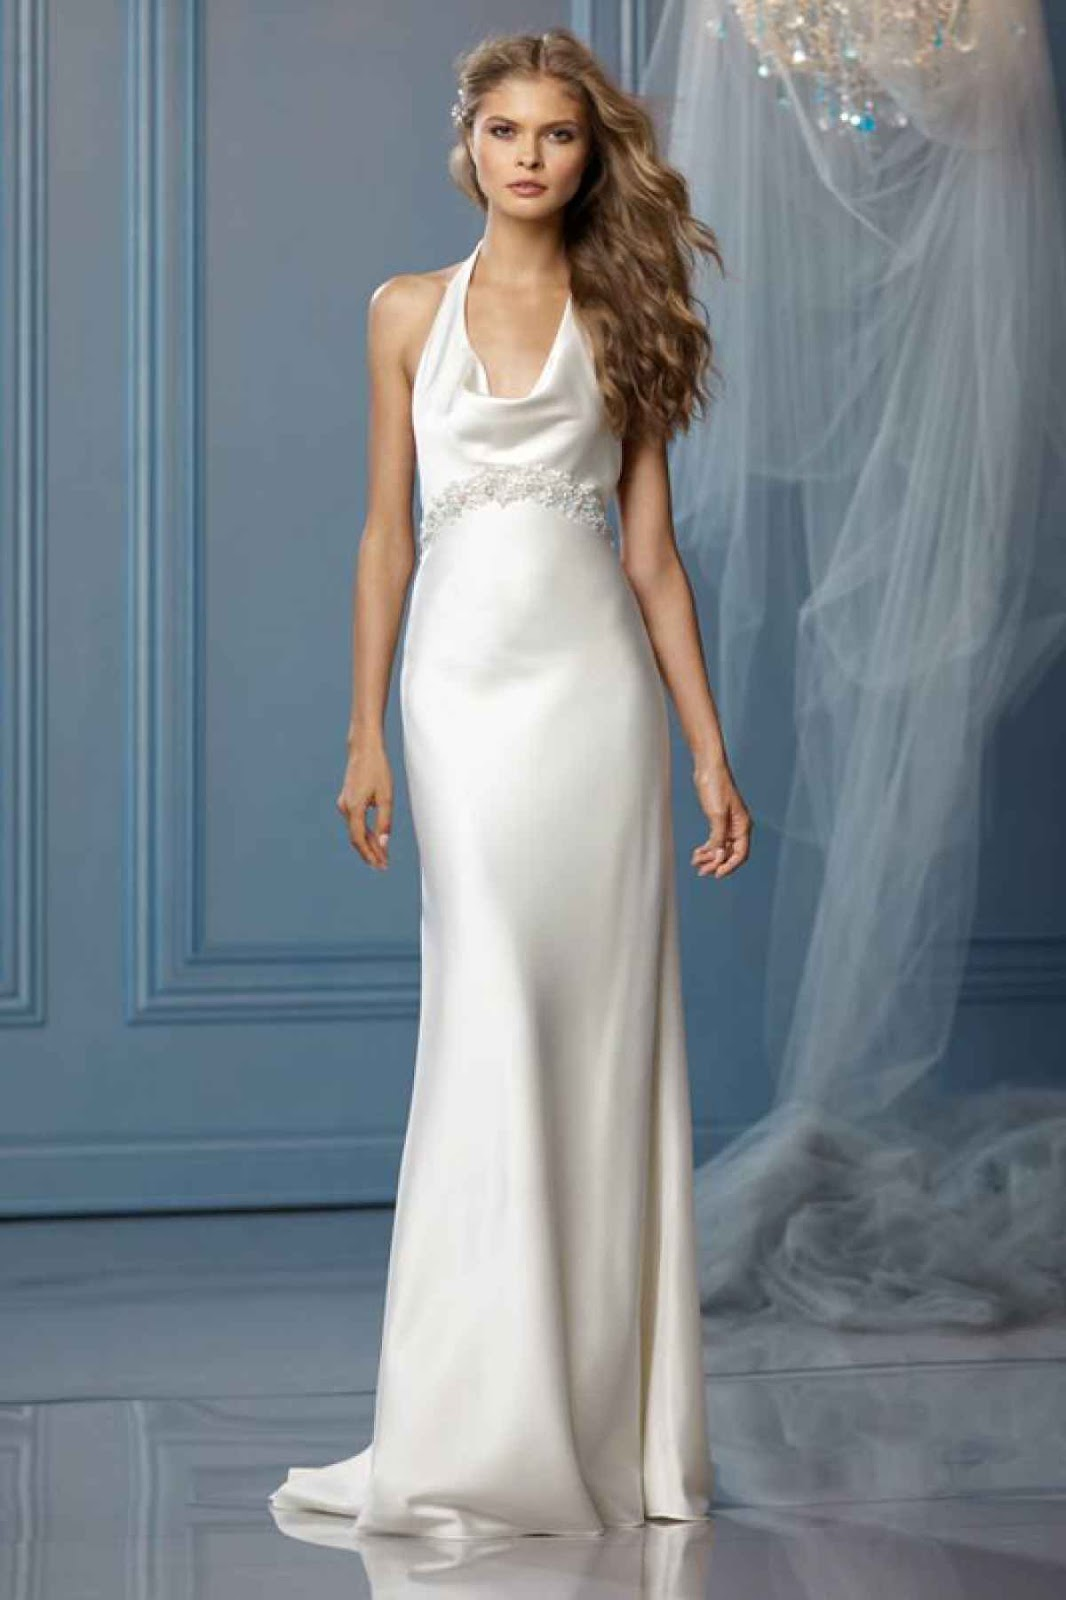 Non Strapless Wedding Dresses, Wedding Dresses Under 1000 2014, Wedding  Dresses Under 500,